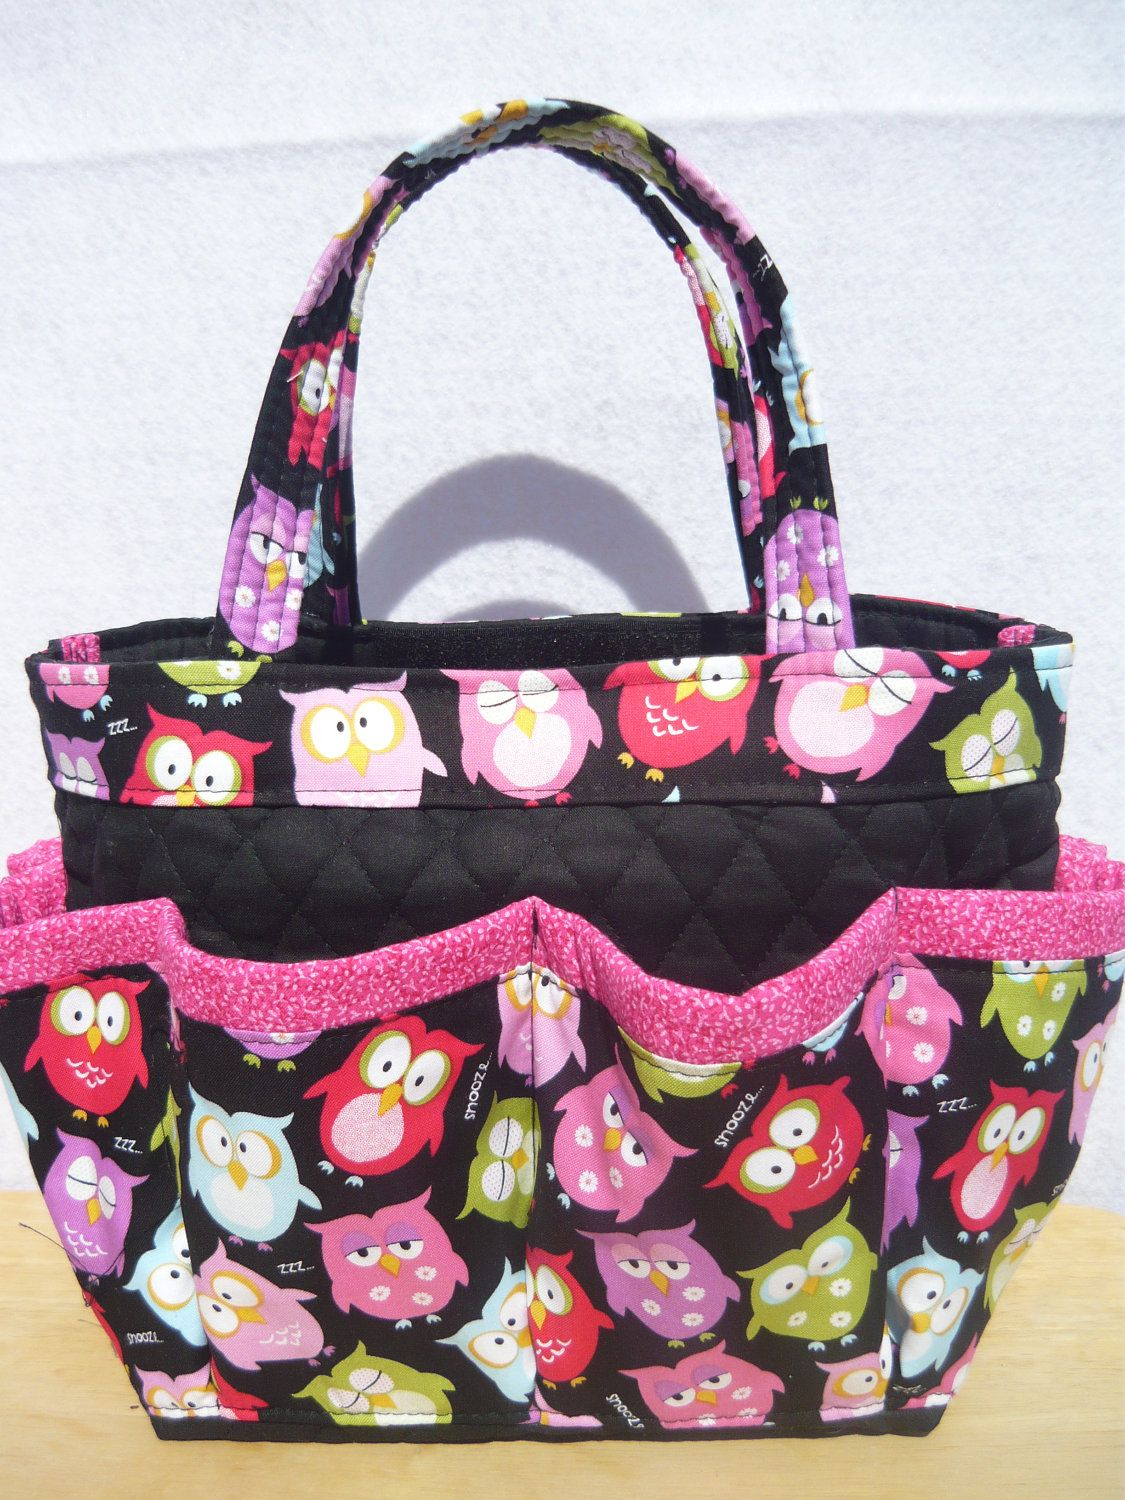 Owls Print Small Bingo Bag Great For Craft And Make Up Organizer